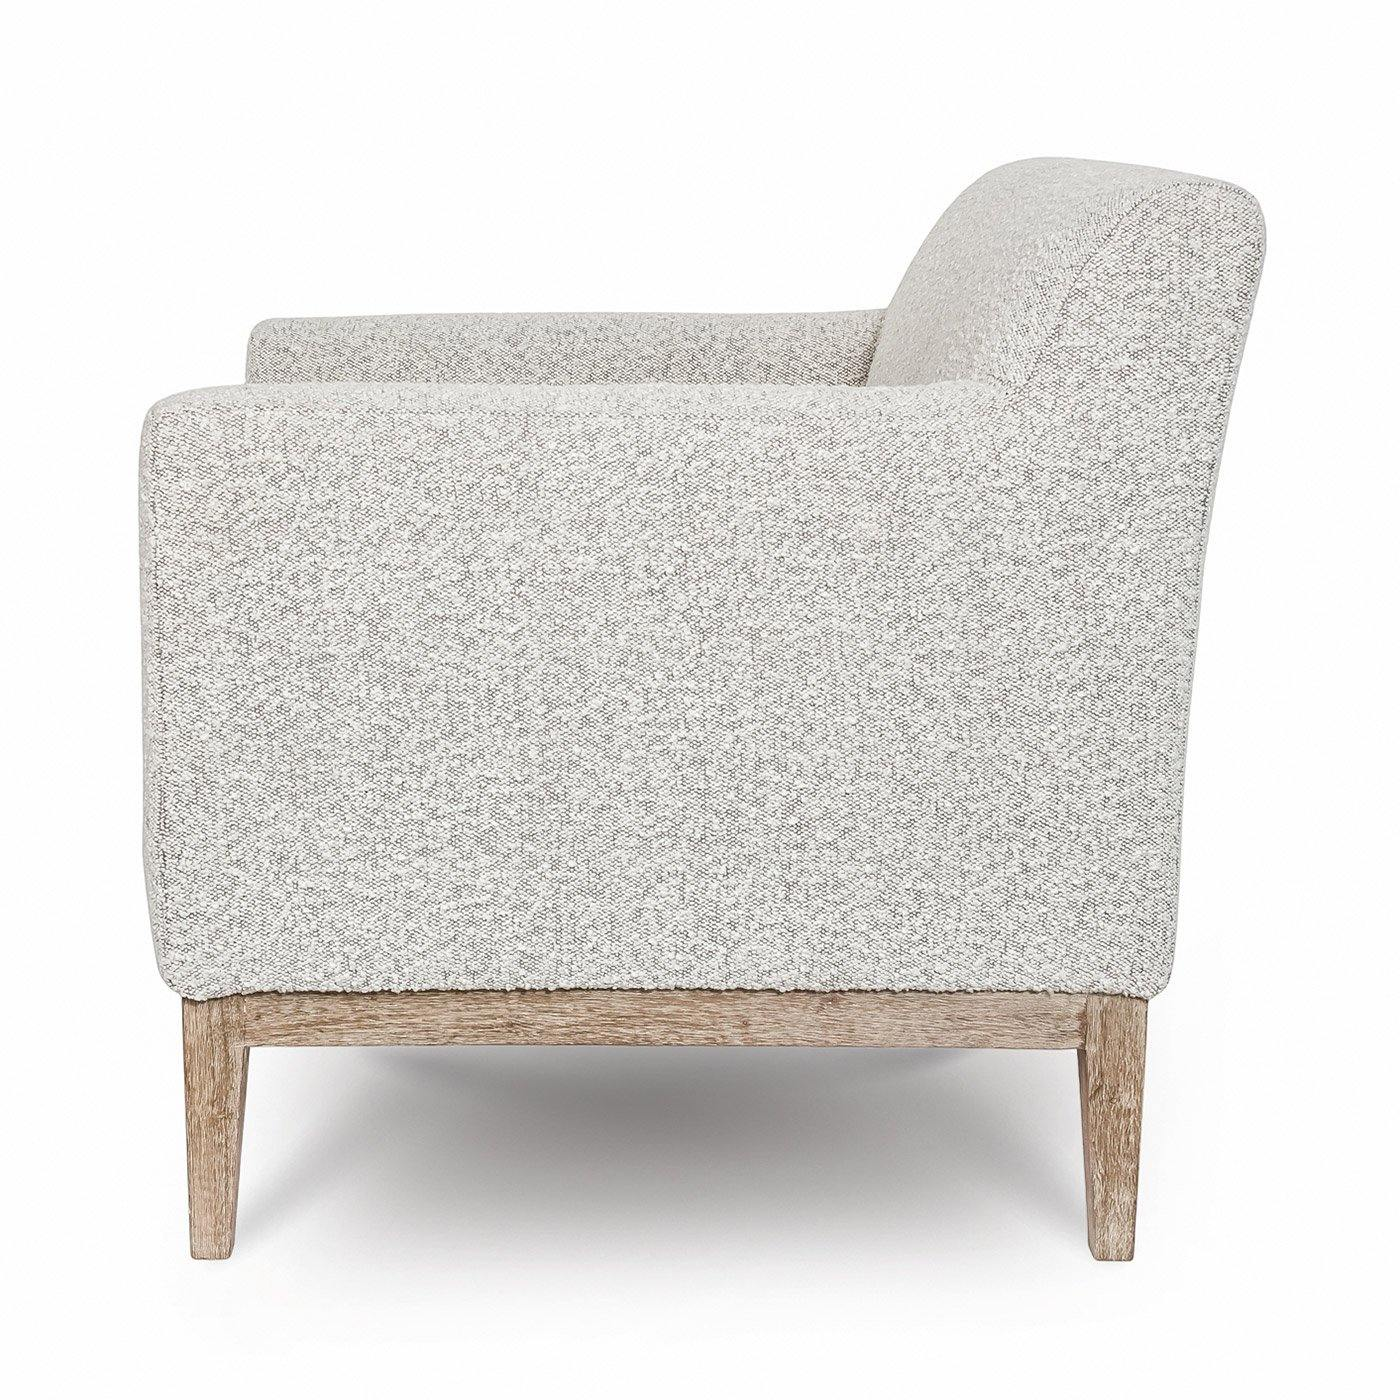 Ezra Chair – Grey Bouclé - Reimagine Designs